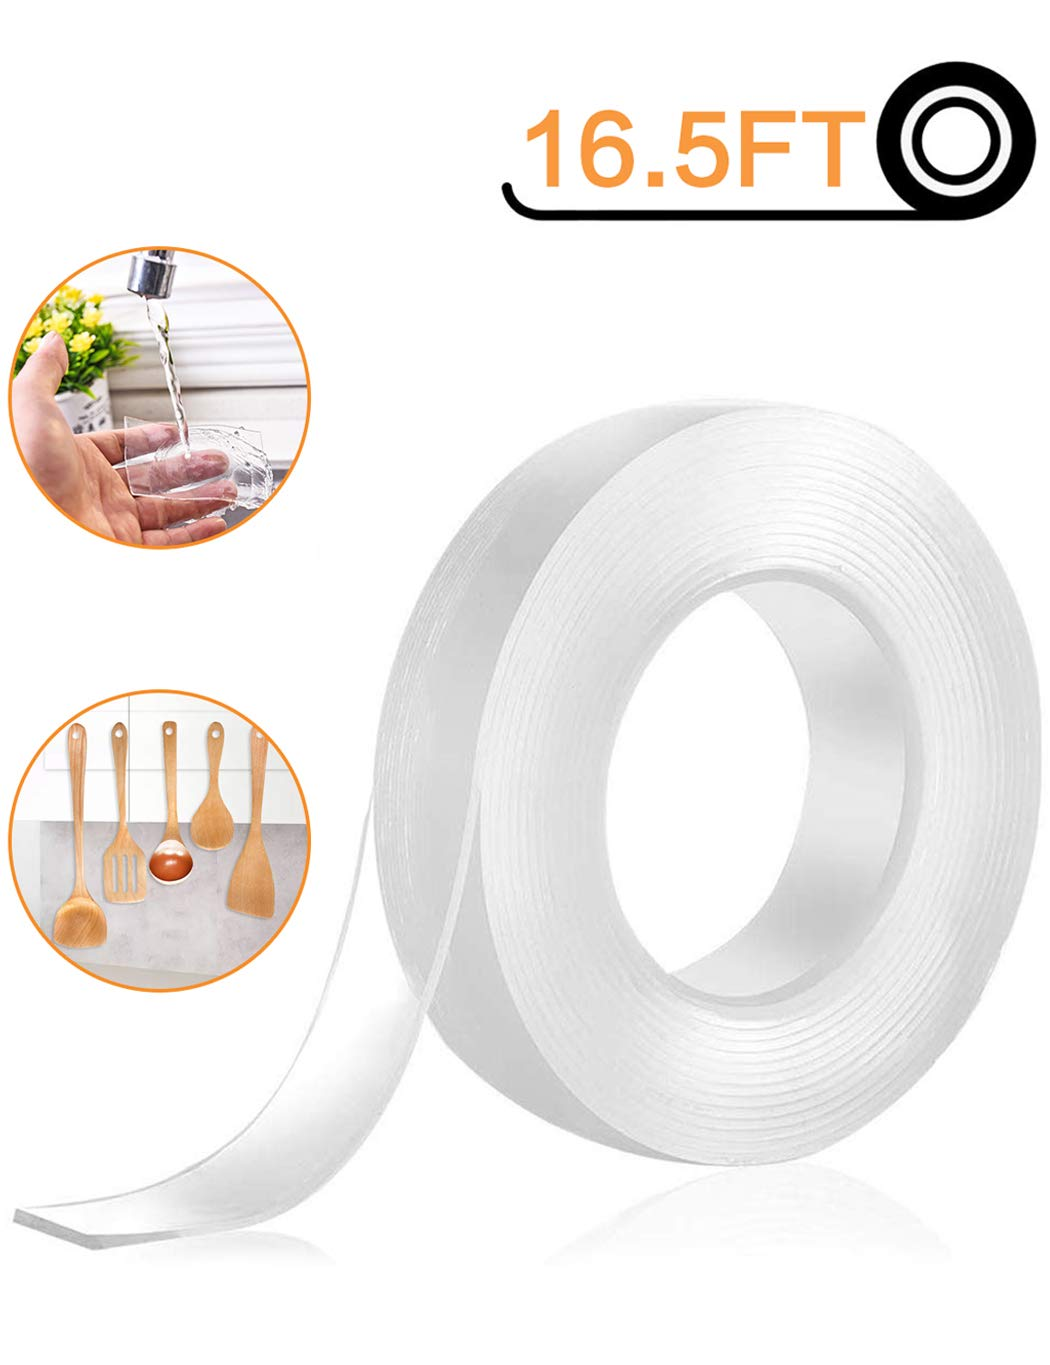 Nano Tape Double Sided Tape Heavy Duty - One Non-Slip Gel Grip Poster Tape Transparent Removable Washable Adhesive Sticky Rug Griper Mat Pads for Mounting Carpet - 16.5 by BOHONG